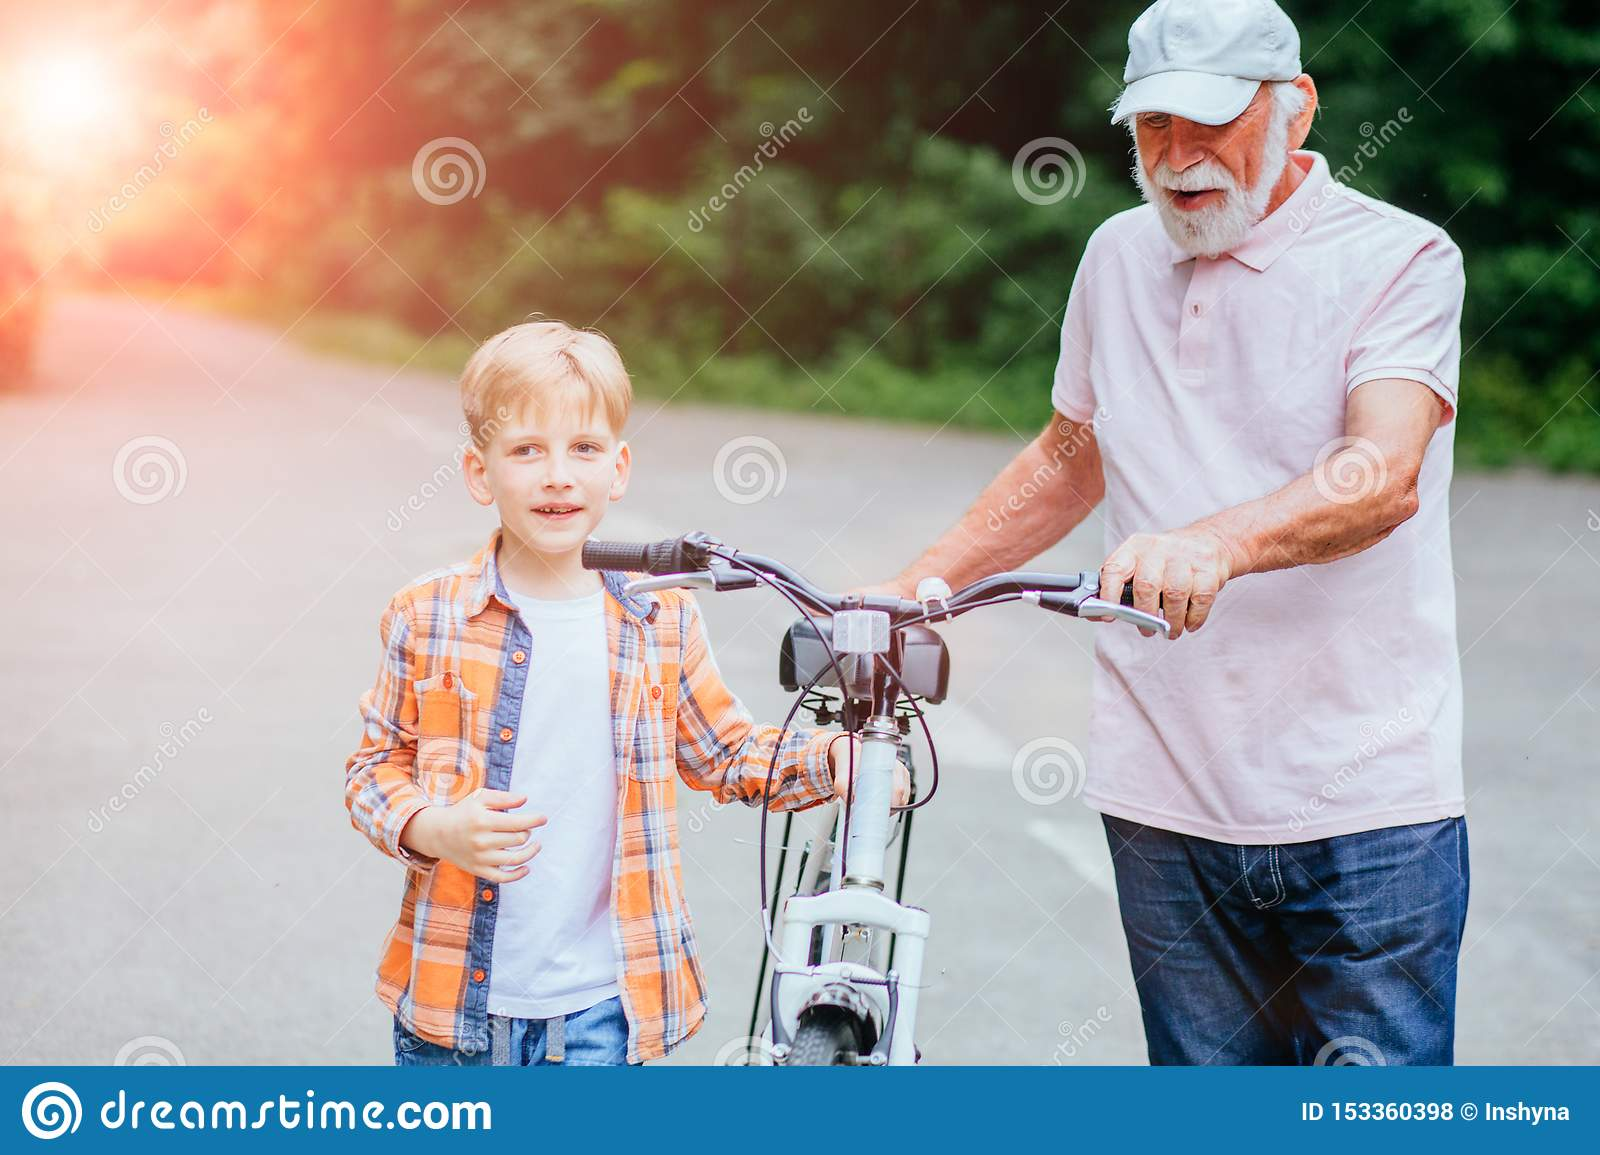 Senior man grandfather and grandson talking while walking with bicycle in the park. Family, generation, safety and people concept